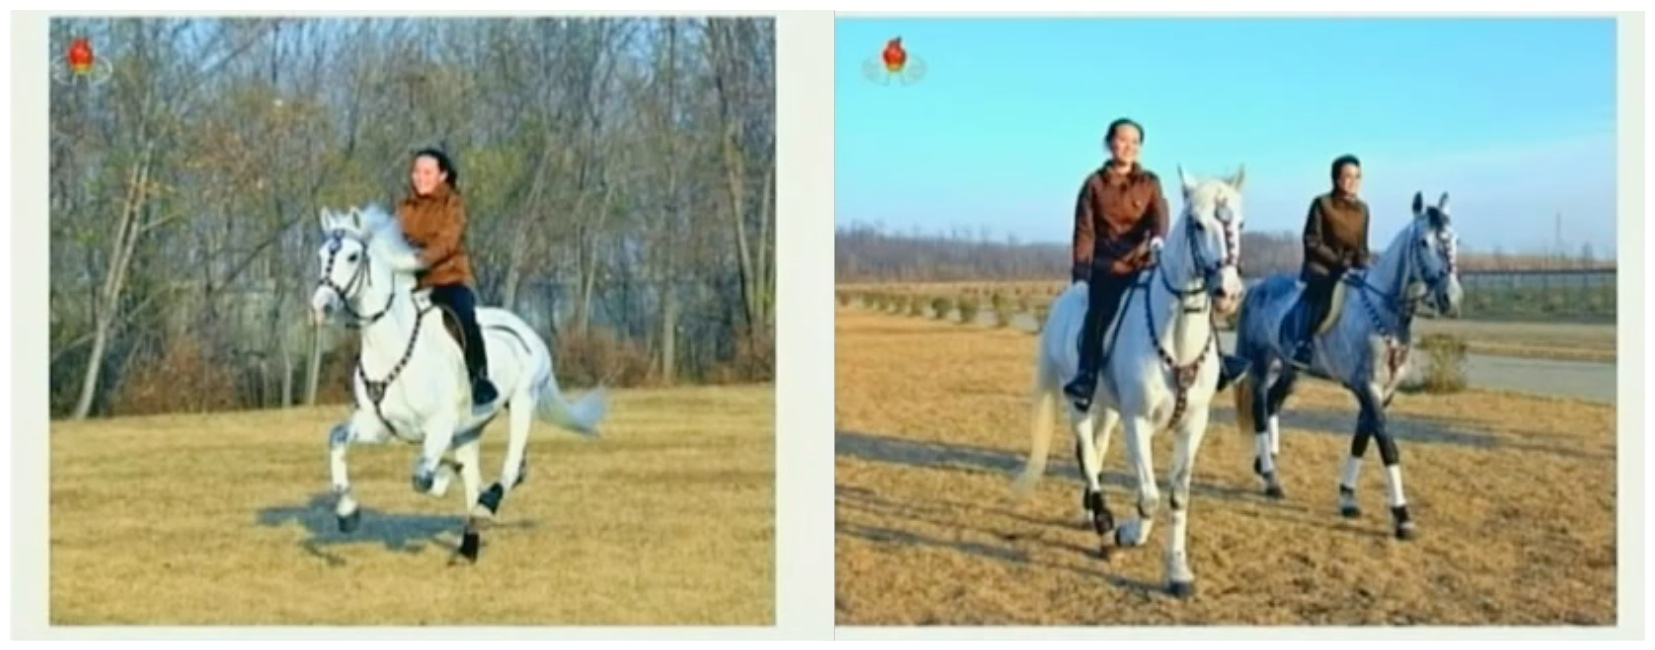 Kim Yo Jong (L) attending  Kim Jong Un's visit to the KPA Equestrian company (currently known as the Mirim Riding Club) in November 2012.  In the image on the right she is seen riding along side her aunt, KWP Secretary Kim Kyong Hui (Photos: KCTV screengrabs)